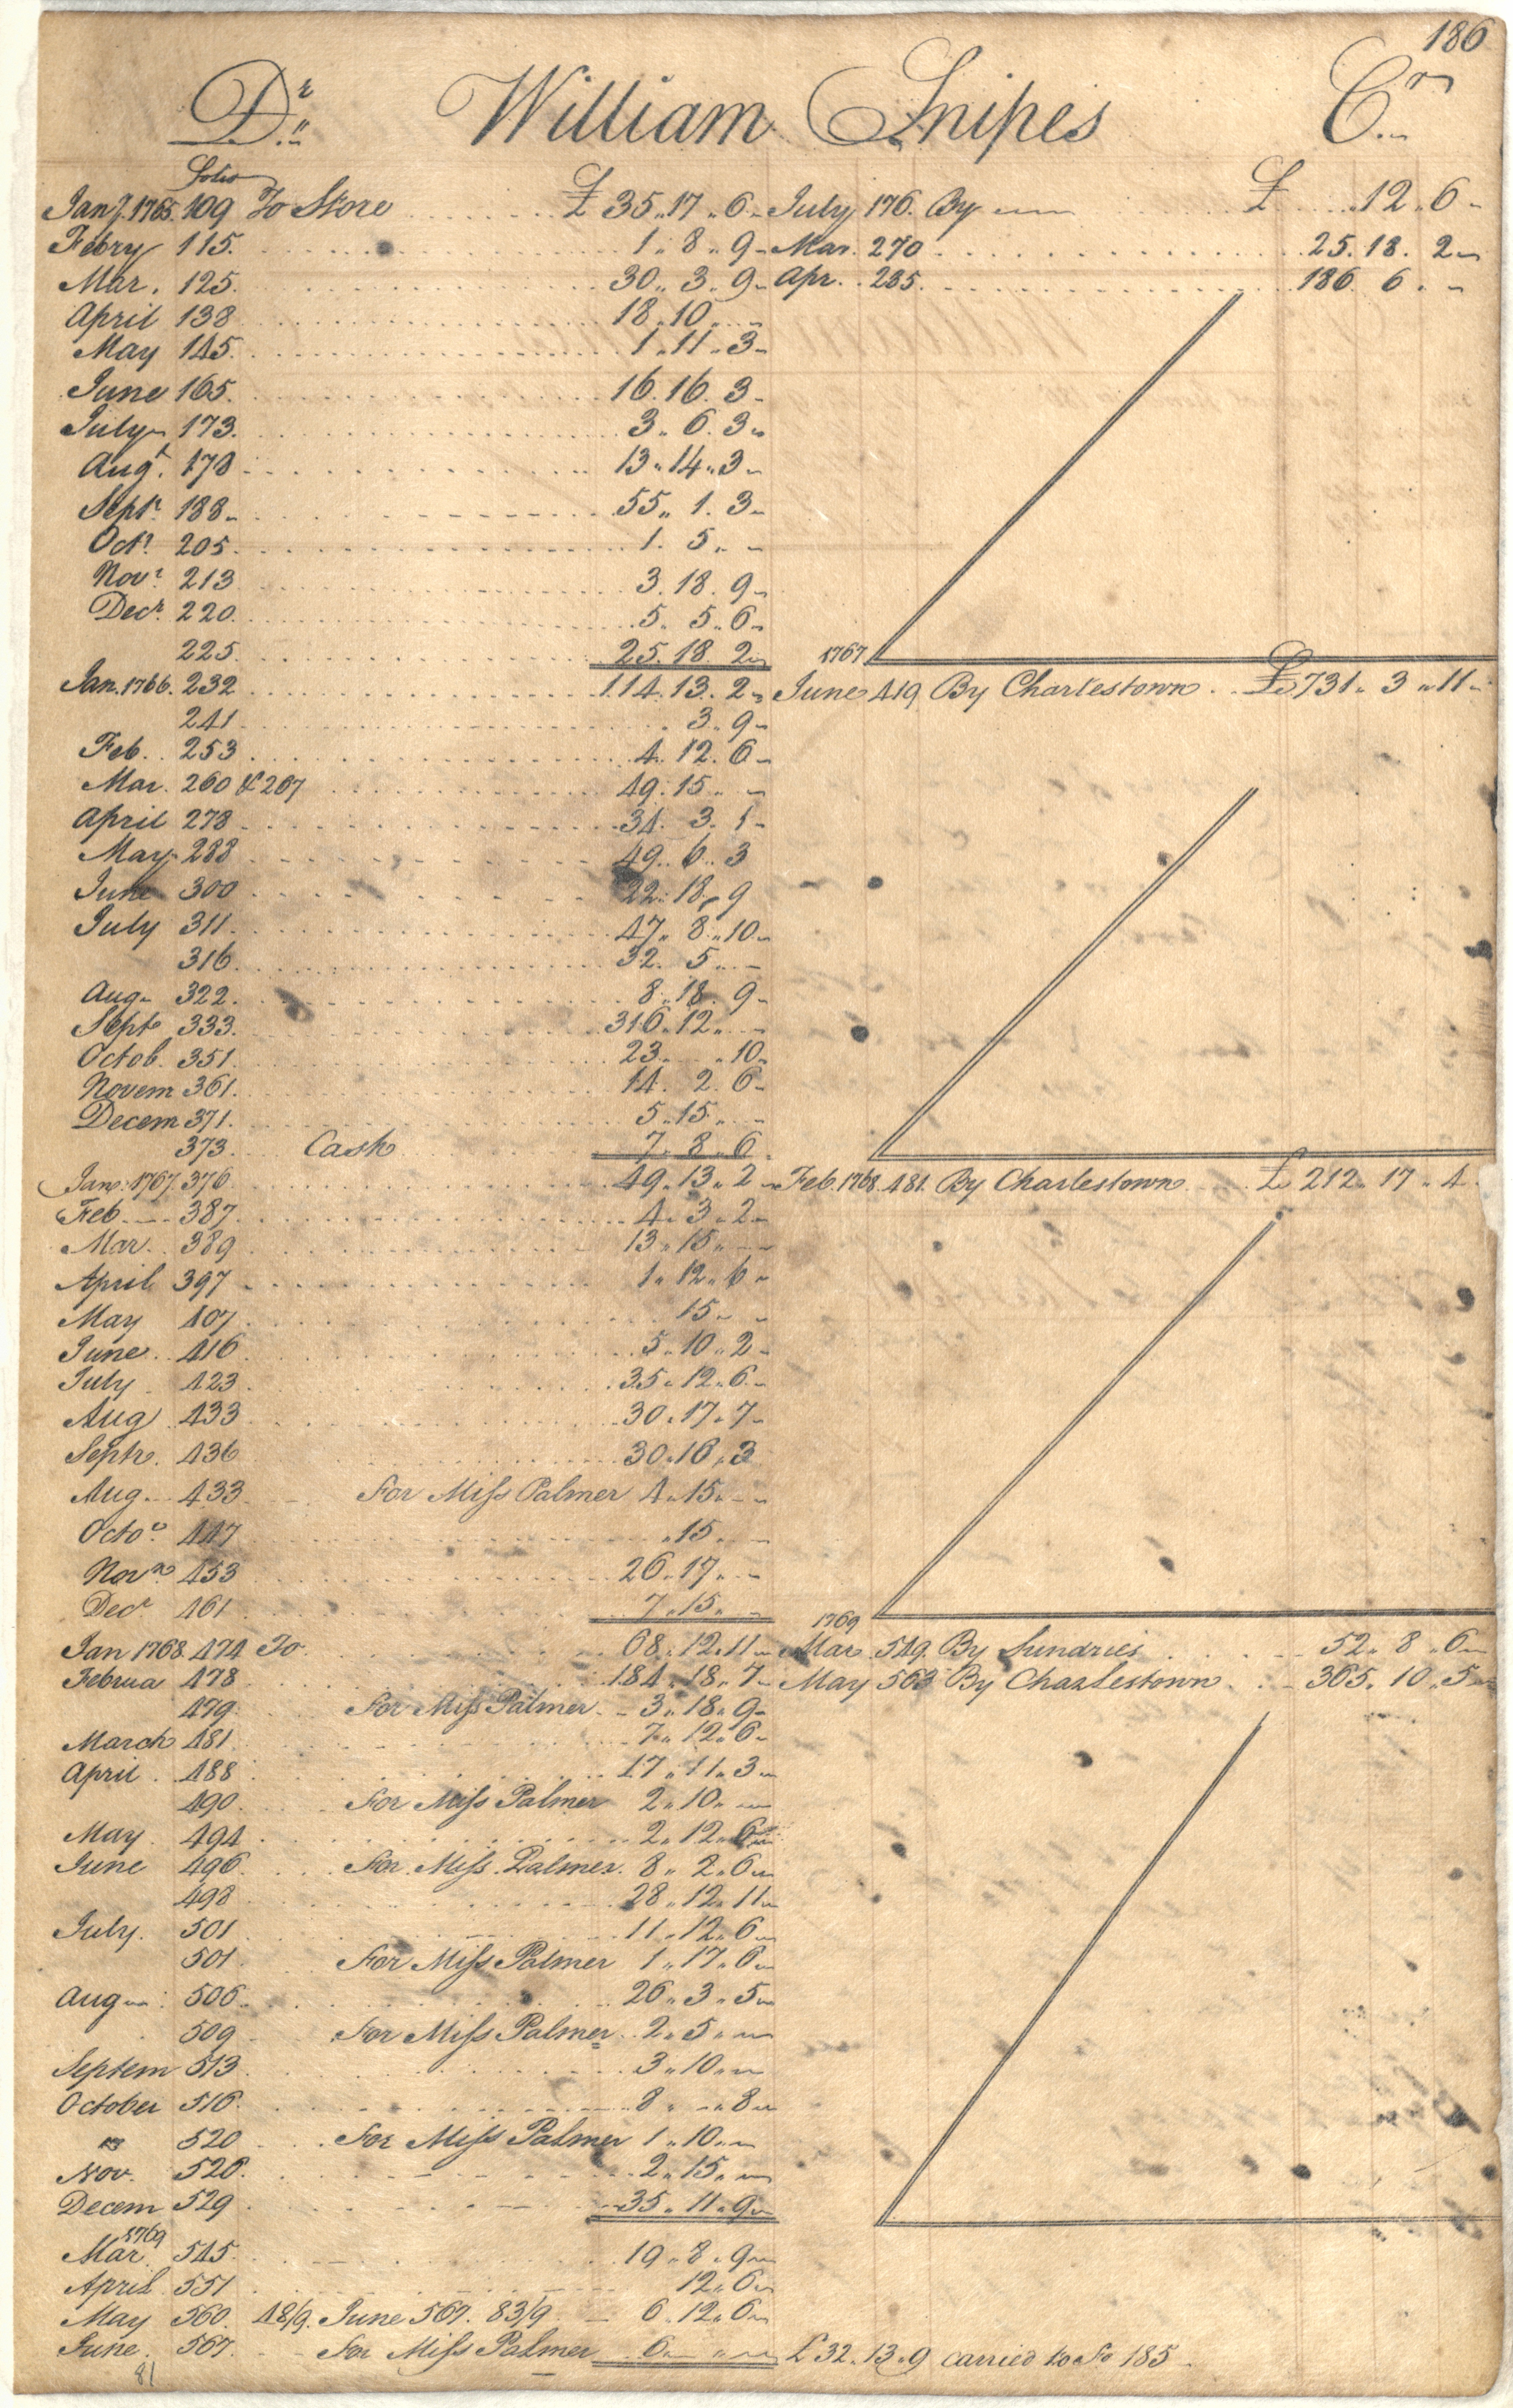 Plowden Weston's Business Ledger, page 186